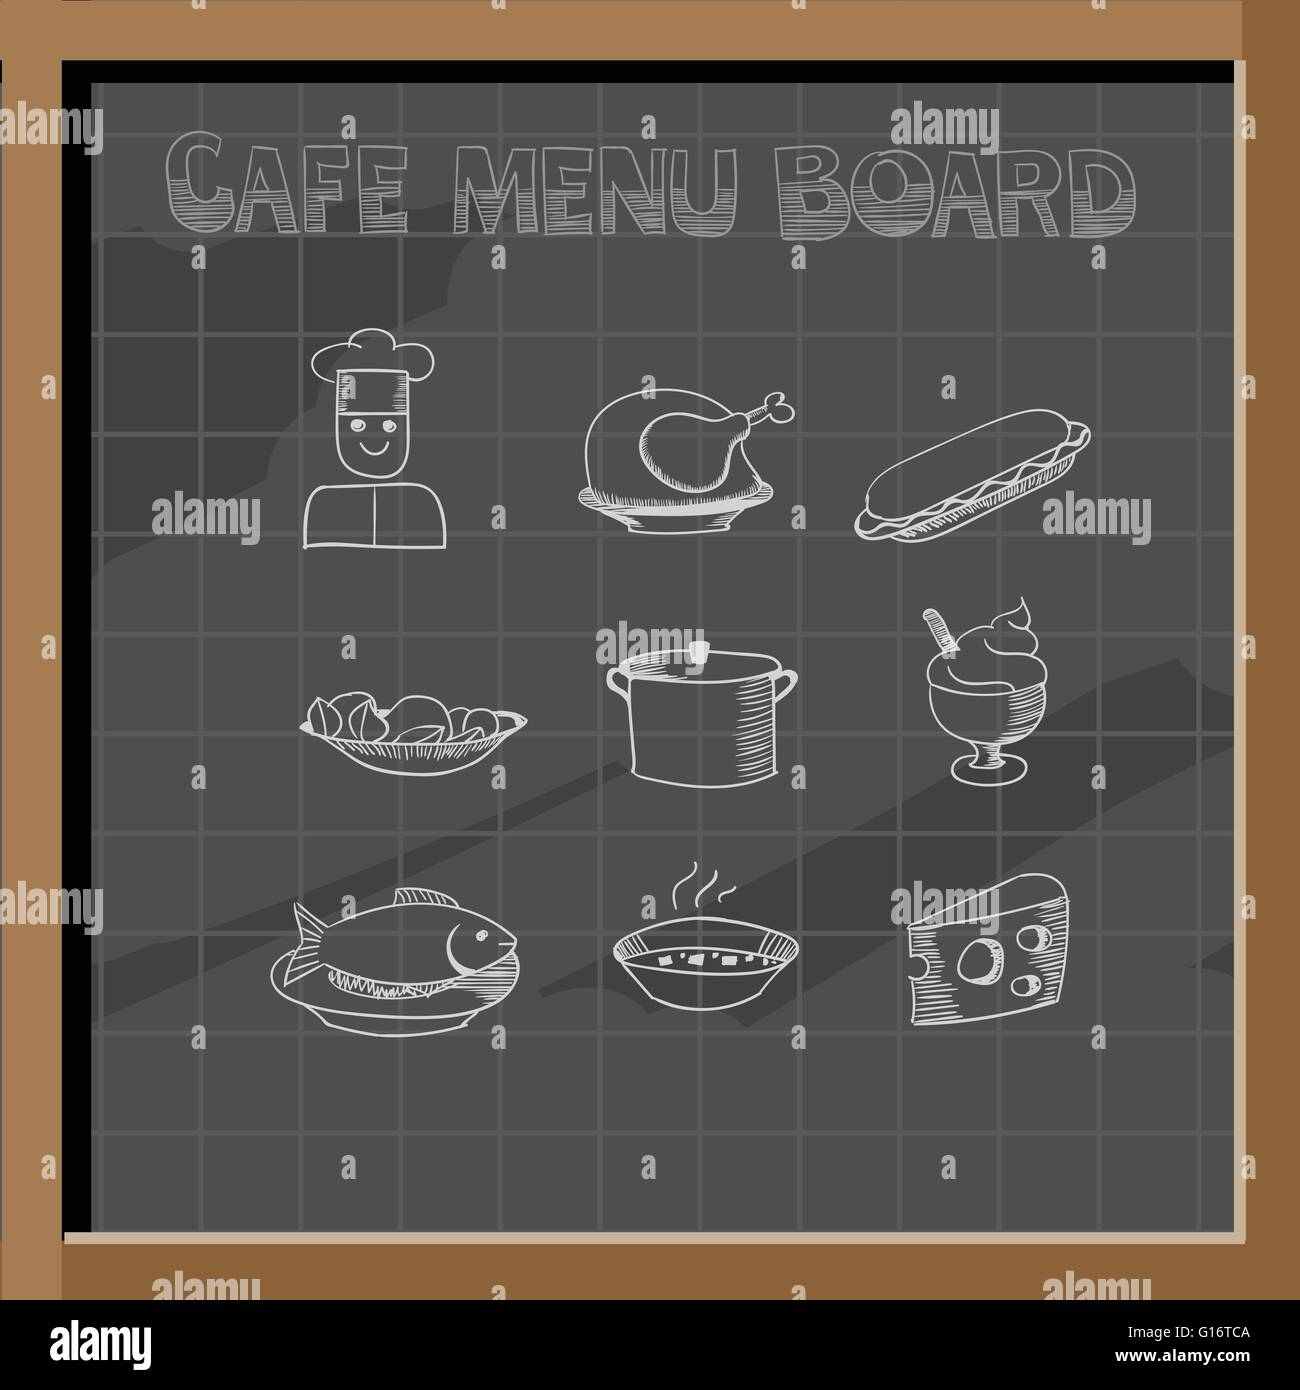 Top Hand drawn cafe menu board signs and food collection on chalkboard  EH91